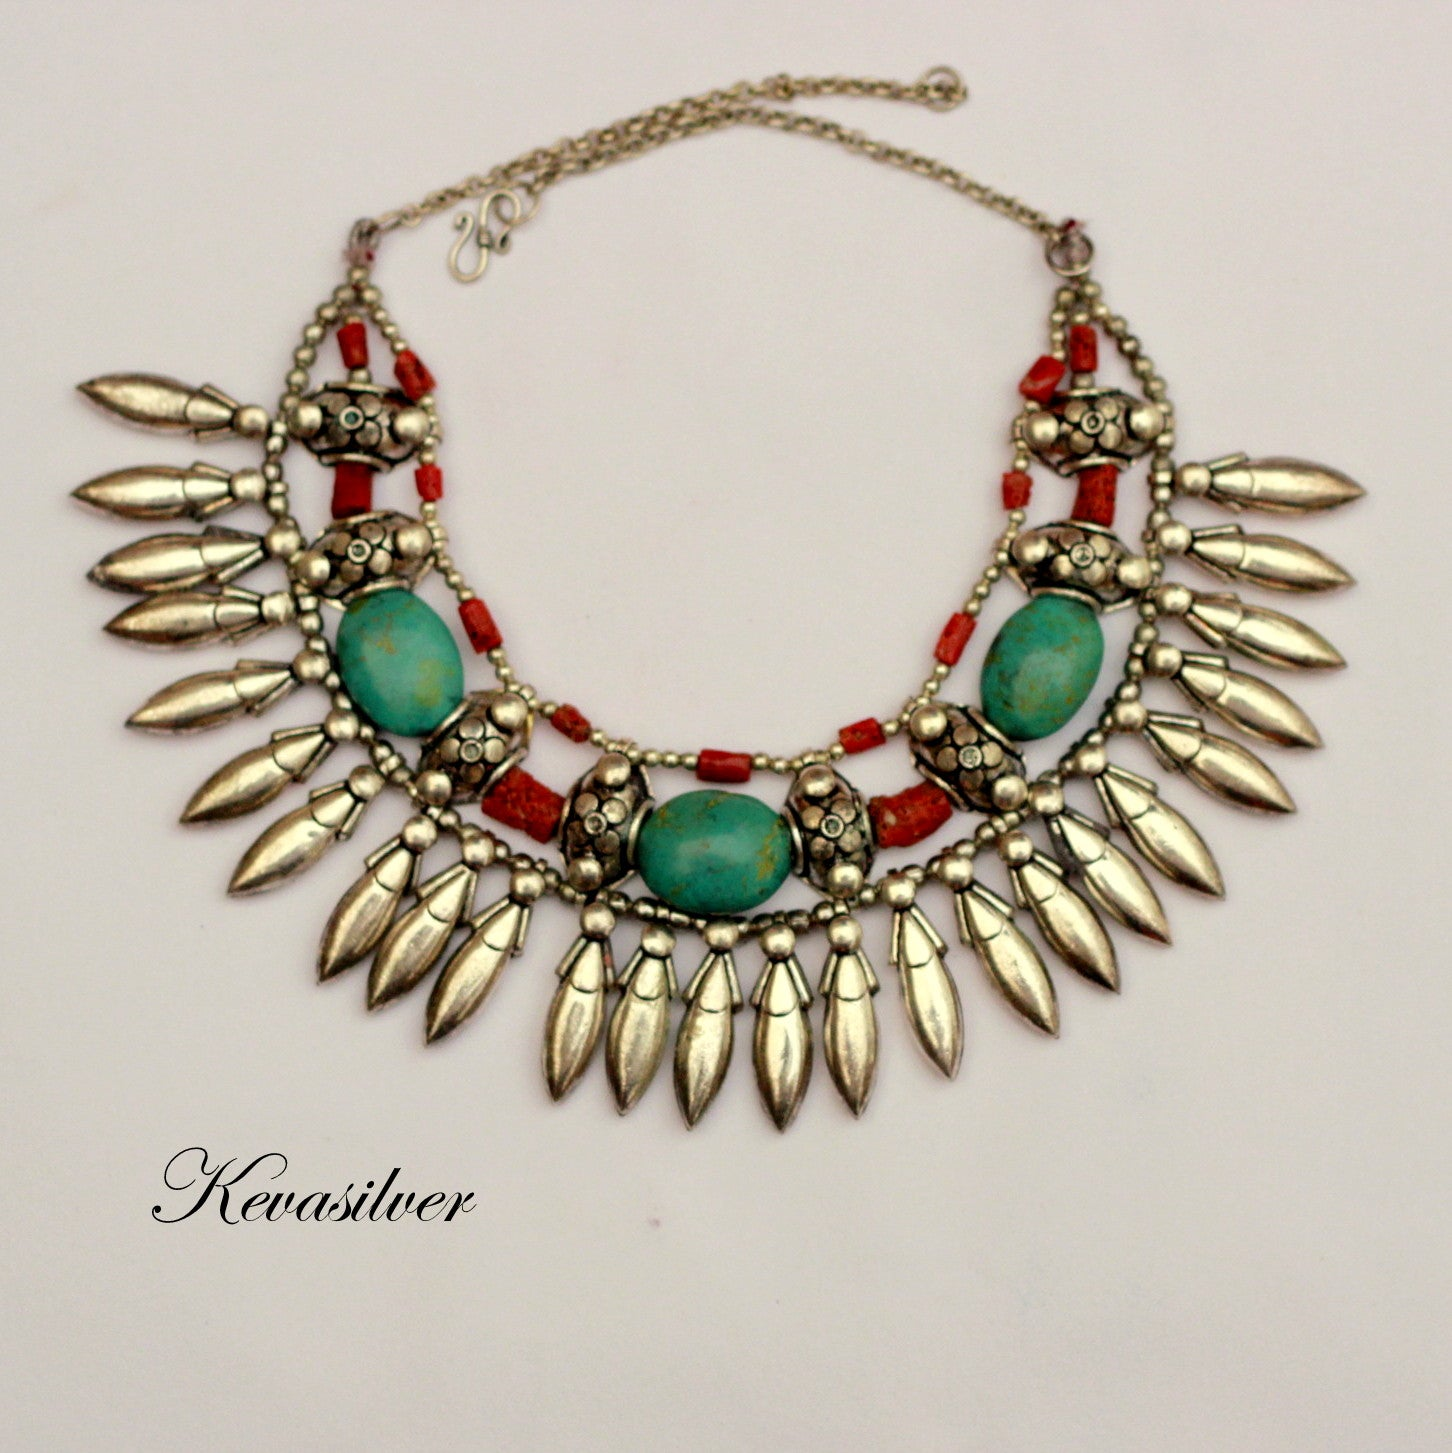 Coral and turquoise collar style necklace with metal spikes